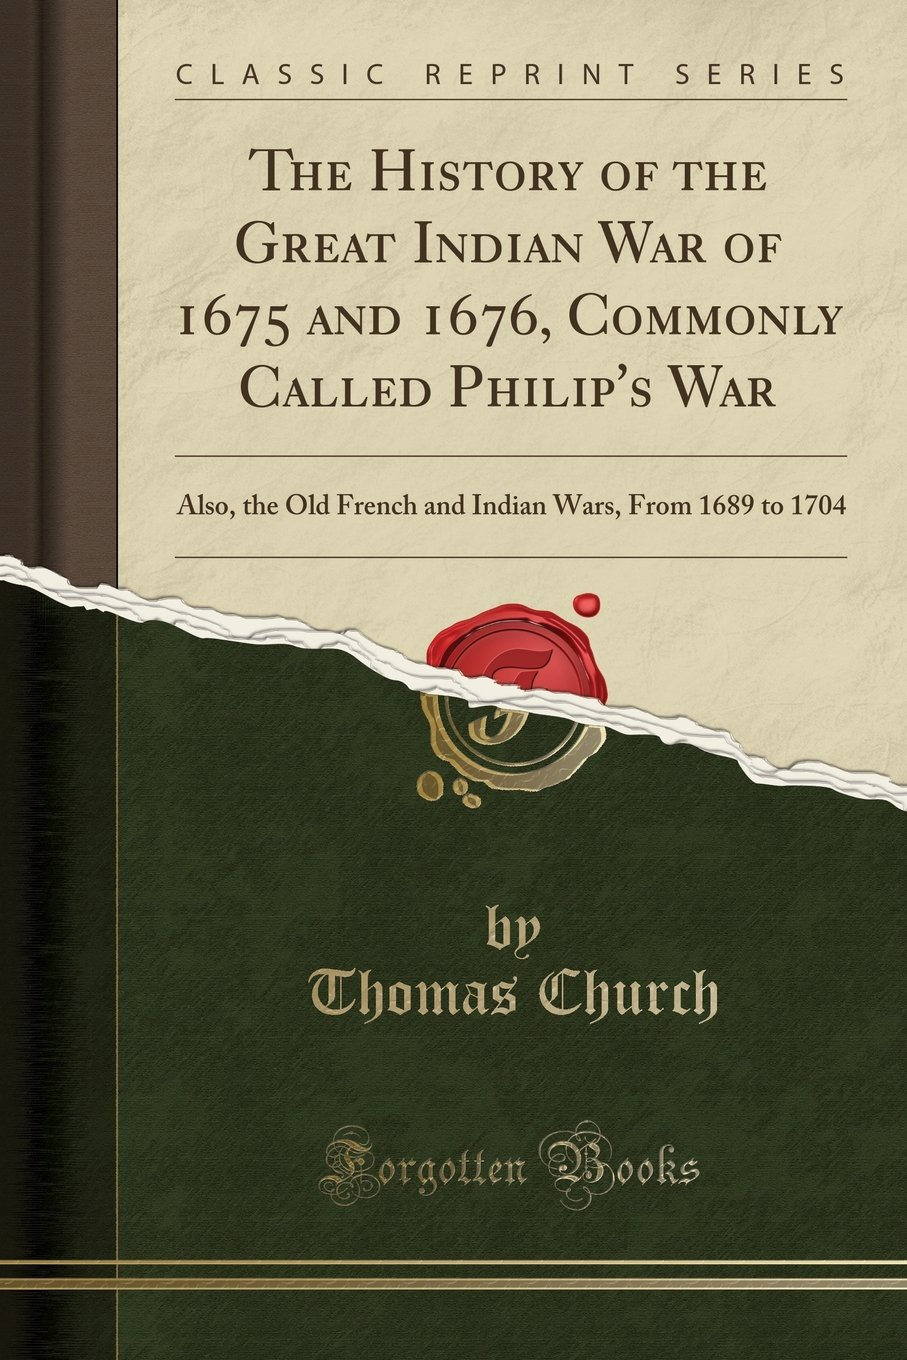 The History of the Great Indian War of 1675 and 1676, Commonly Called Philip's War: Also, the Old French and Indian Wars, From 1689 to 1704 (Classic Reprint) pdf epub